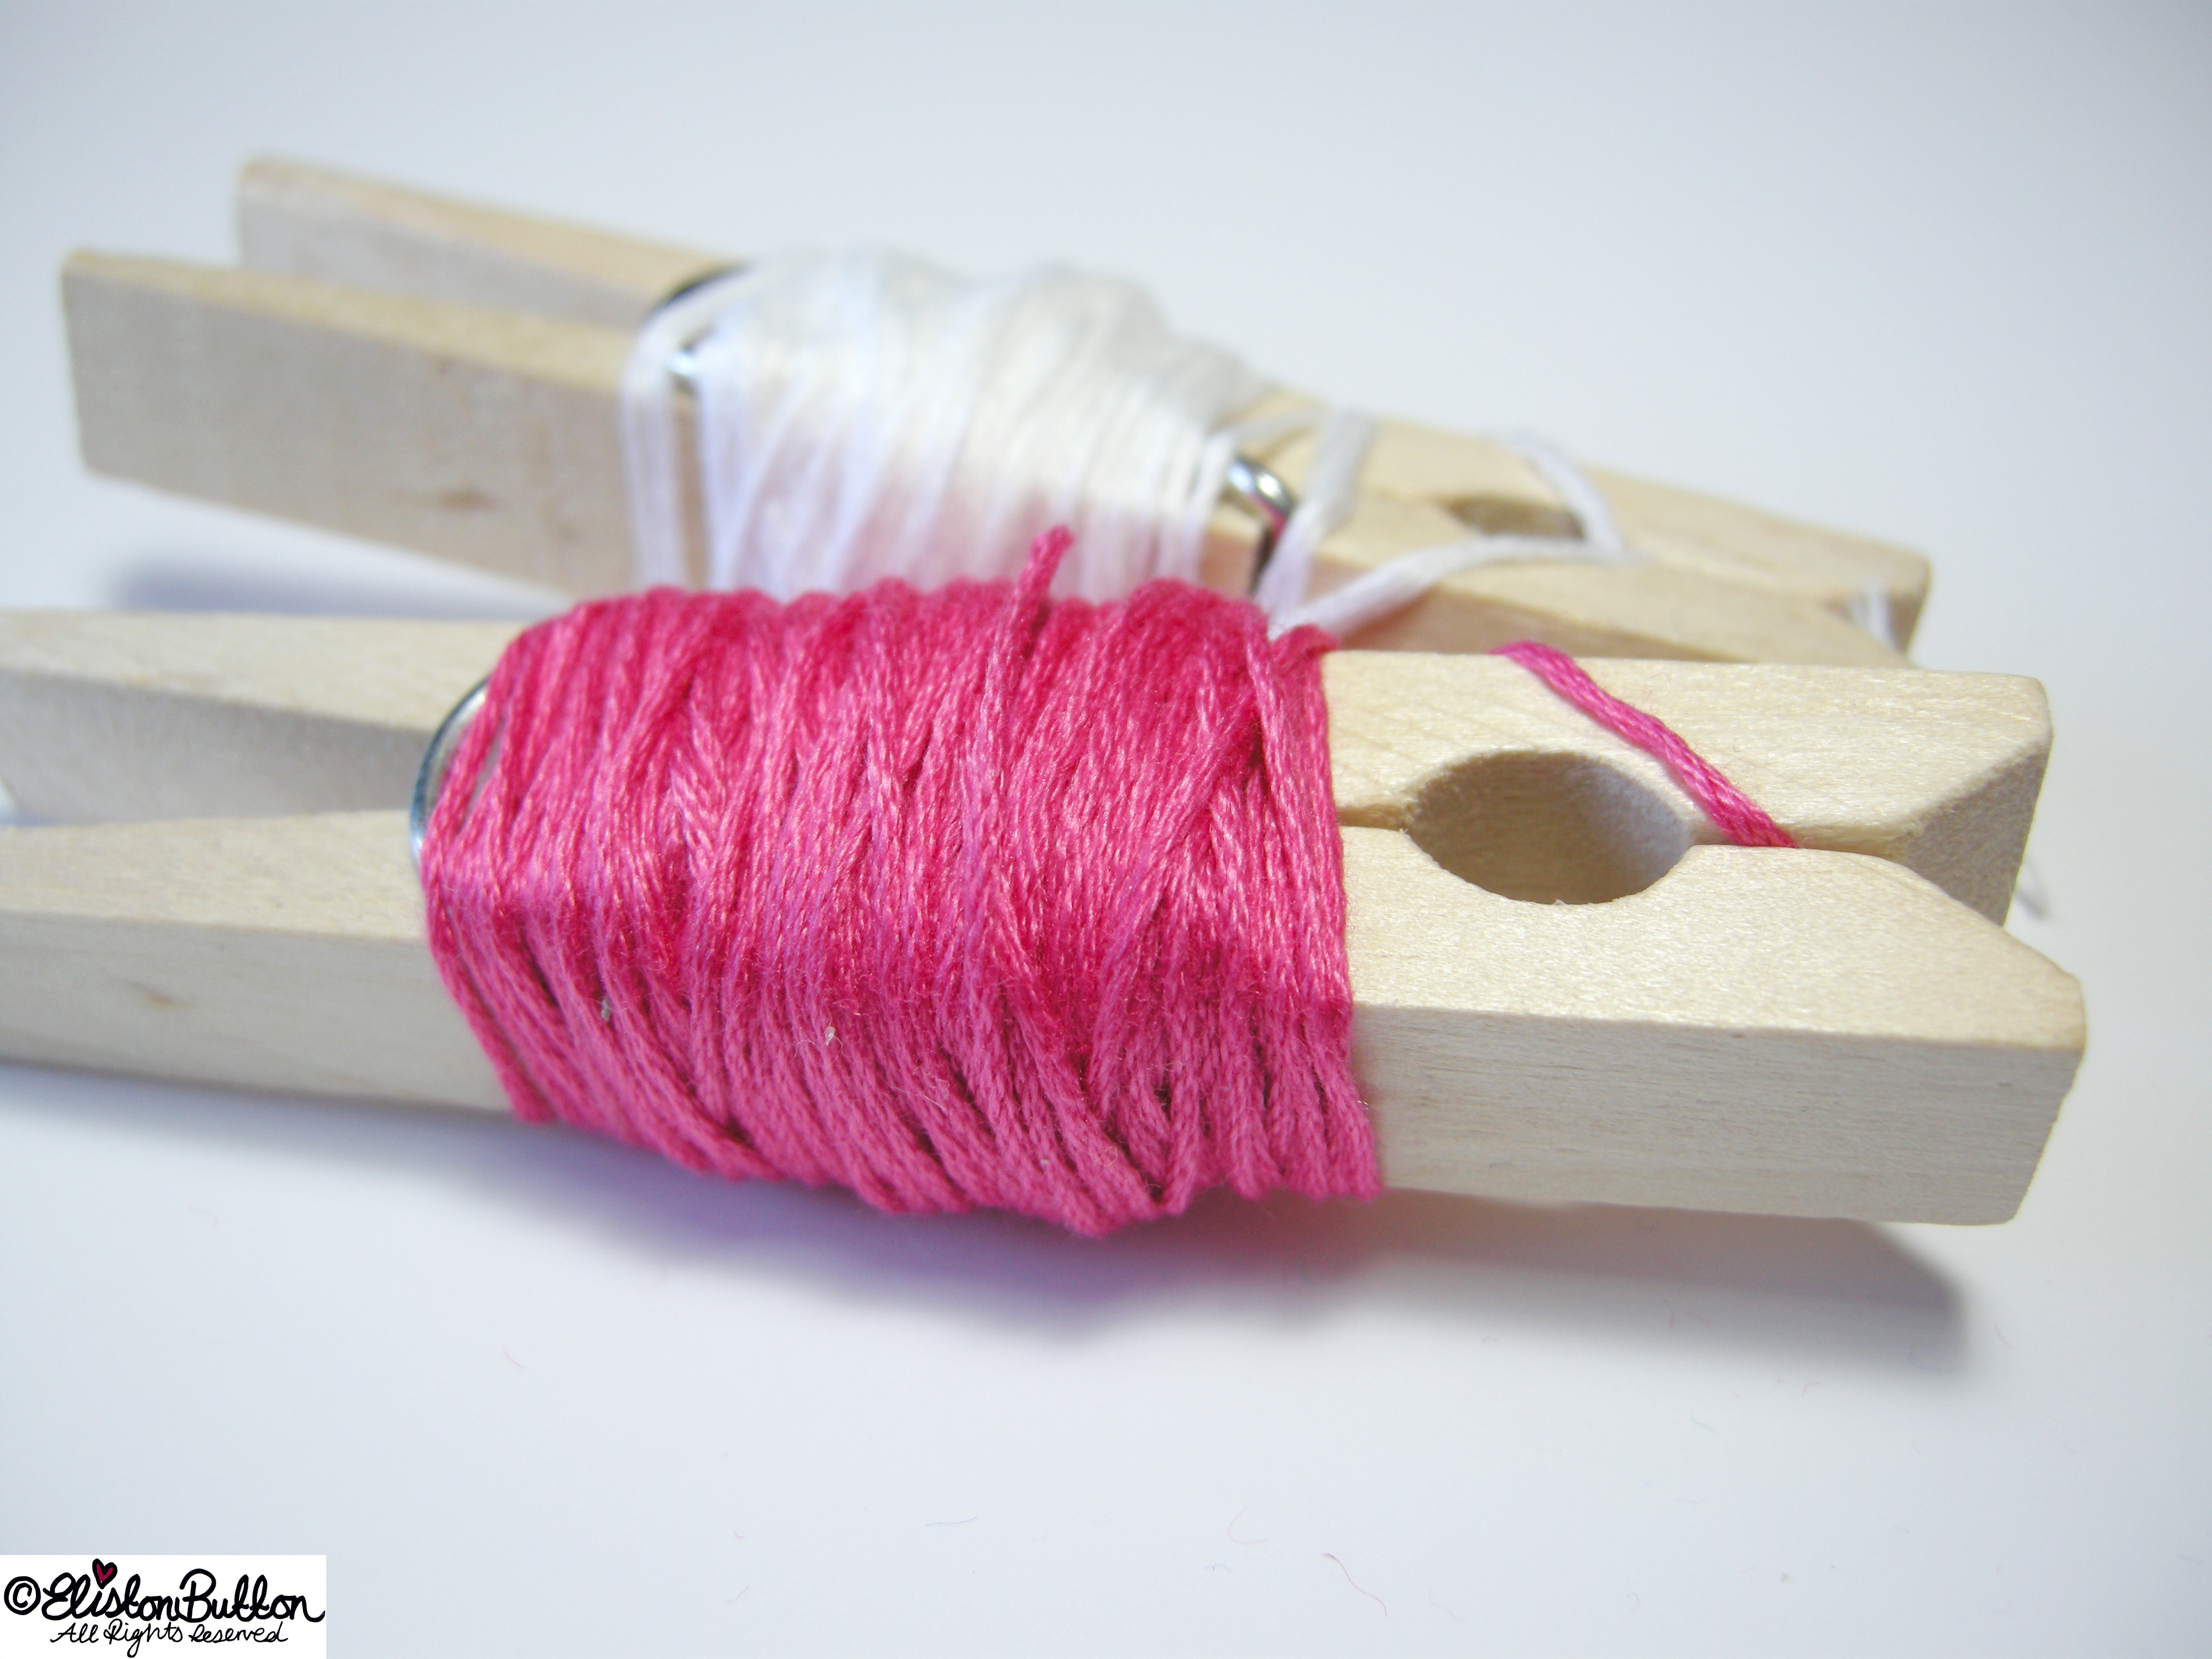 Hot Pink and Crisp White Embroidery Thread - 27 Before 27 - Zig-a-Zig-ah! at www.elistonbutton.com - Eliston Button - That Crafty Kid – Art, Design, Craft & Adventure.